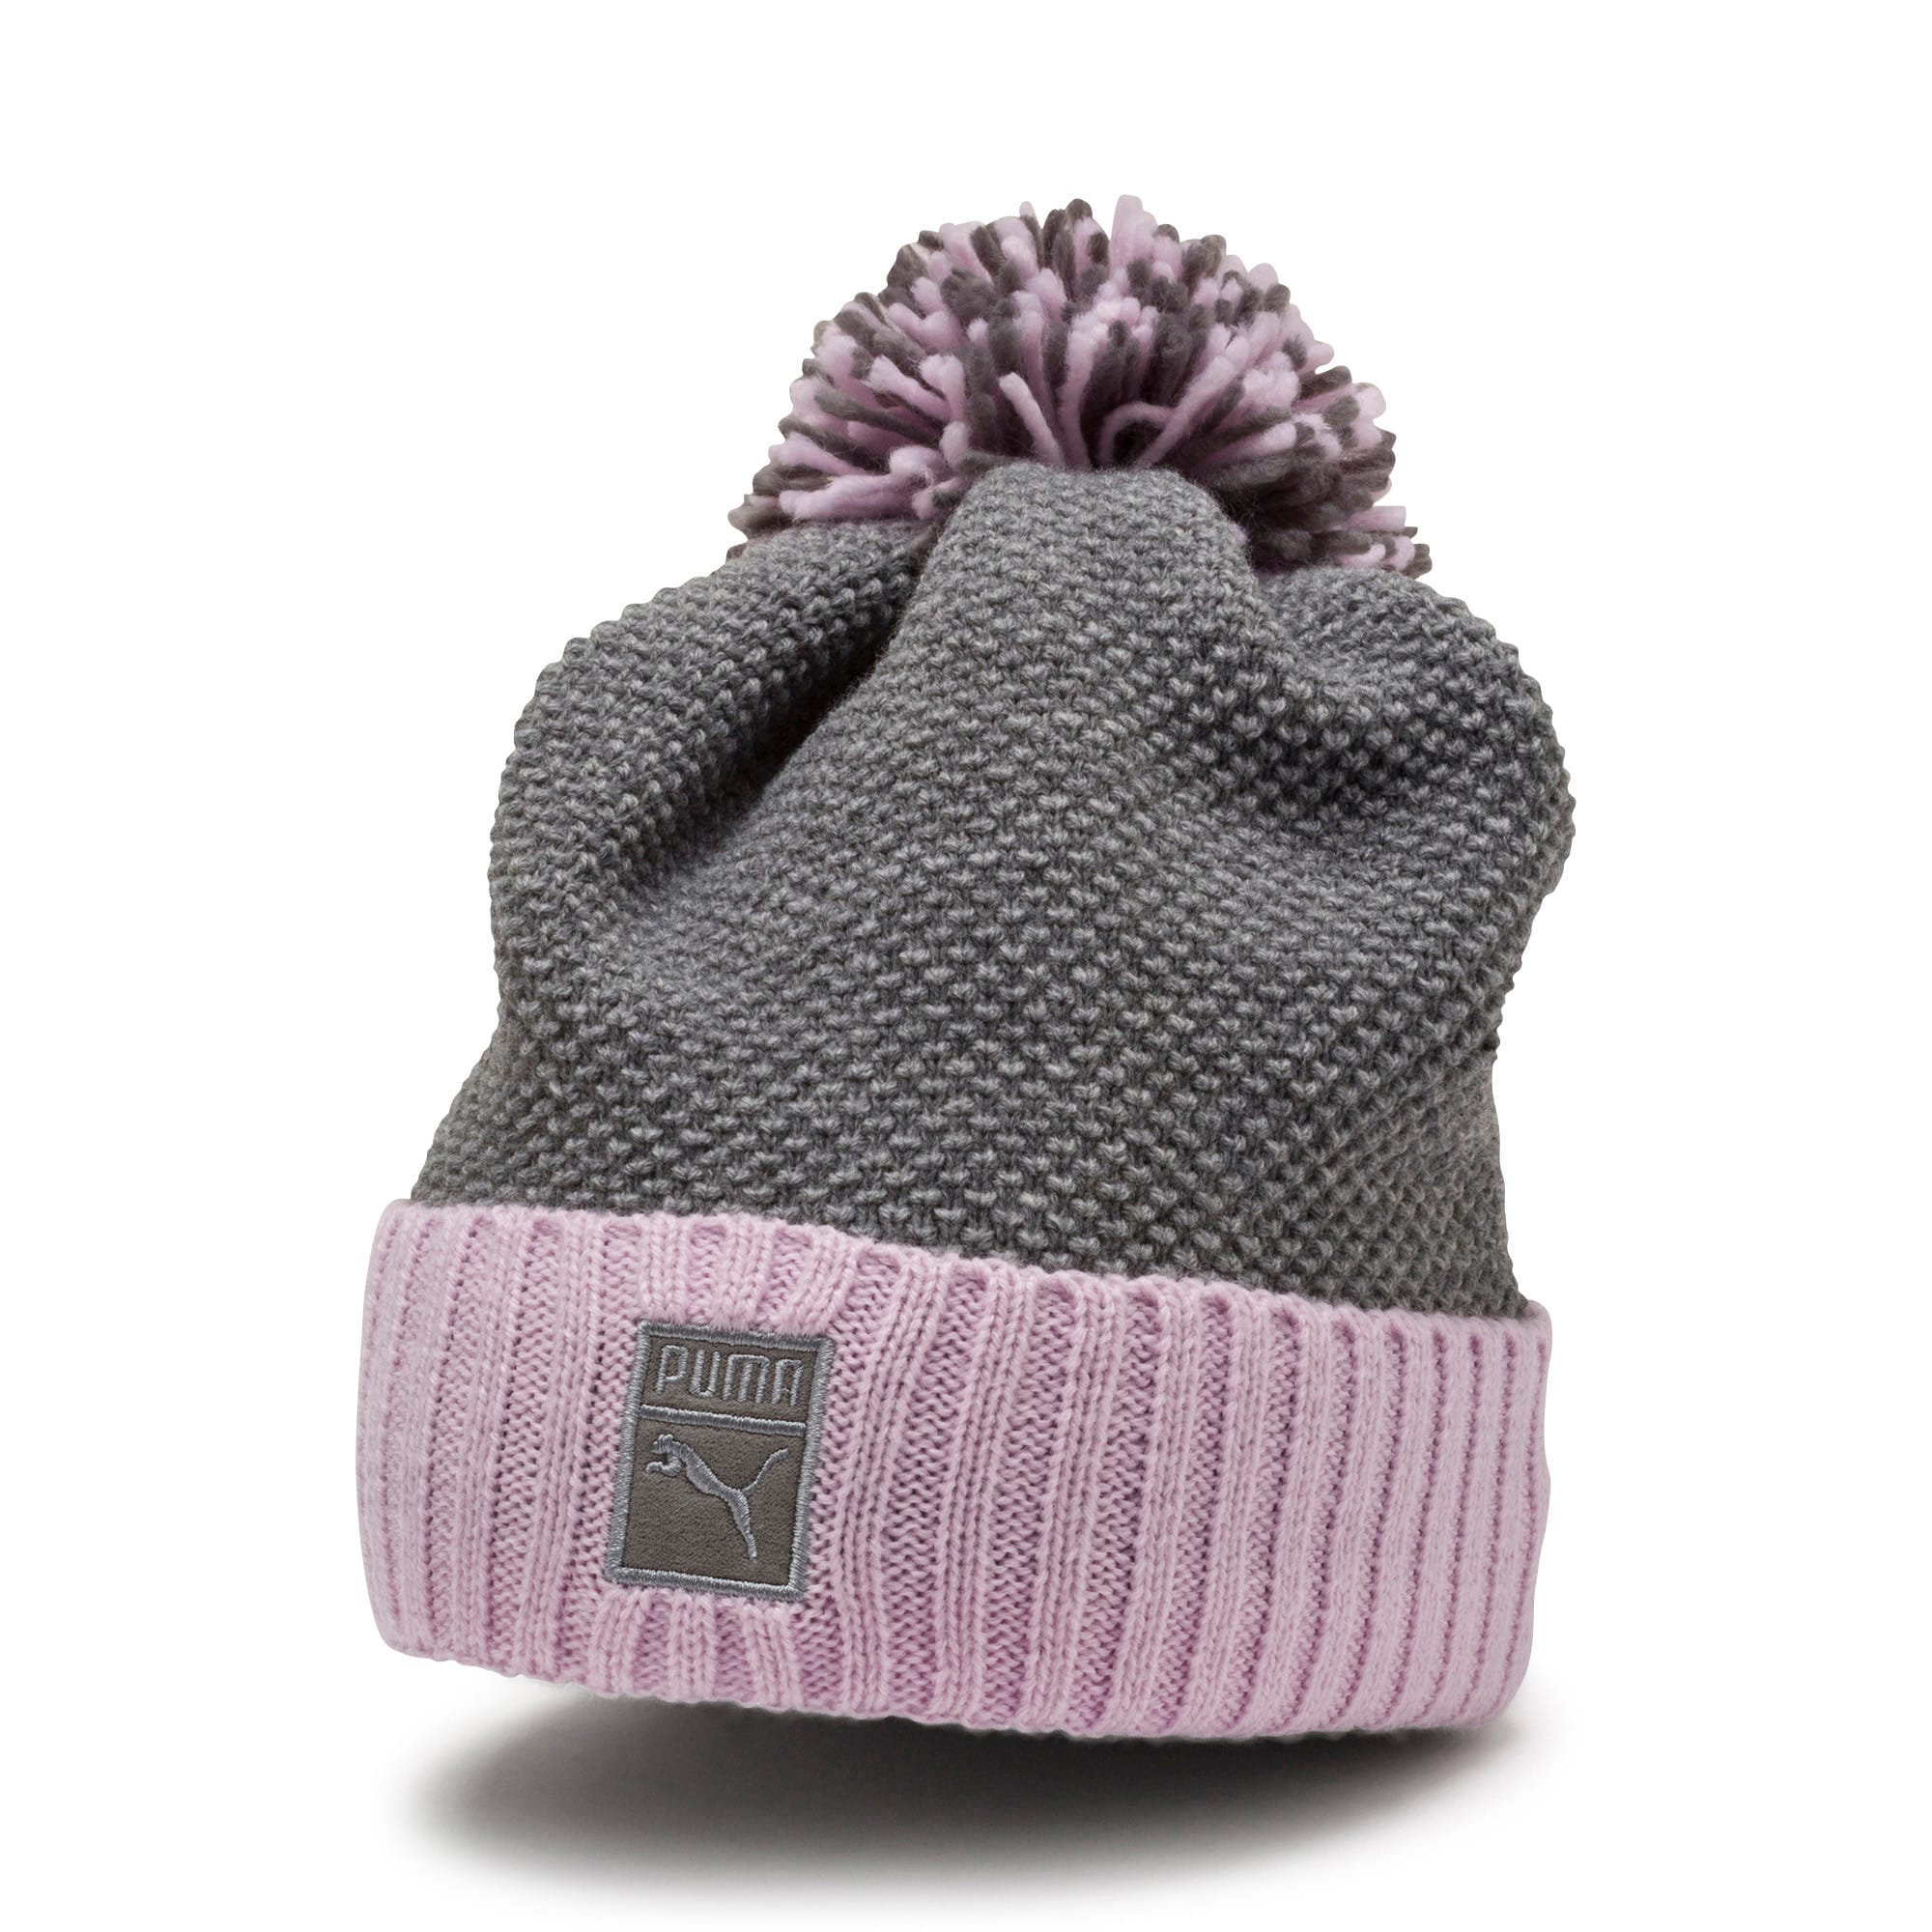 Thumbnail 1 of ARCHIVE Pom beanie, Light Gray Heather-W. orchid, medium-IND